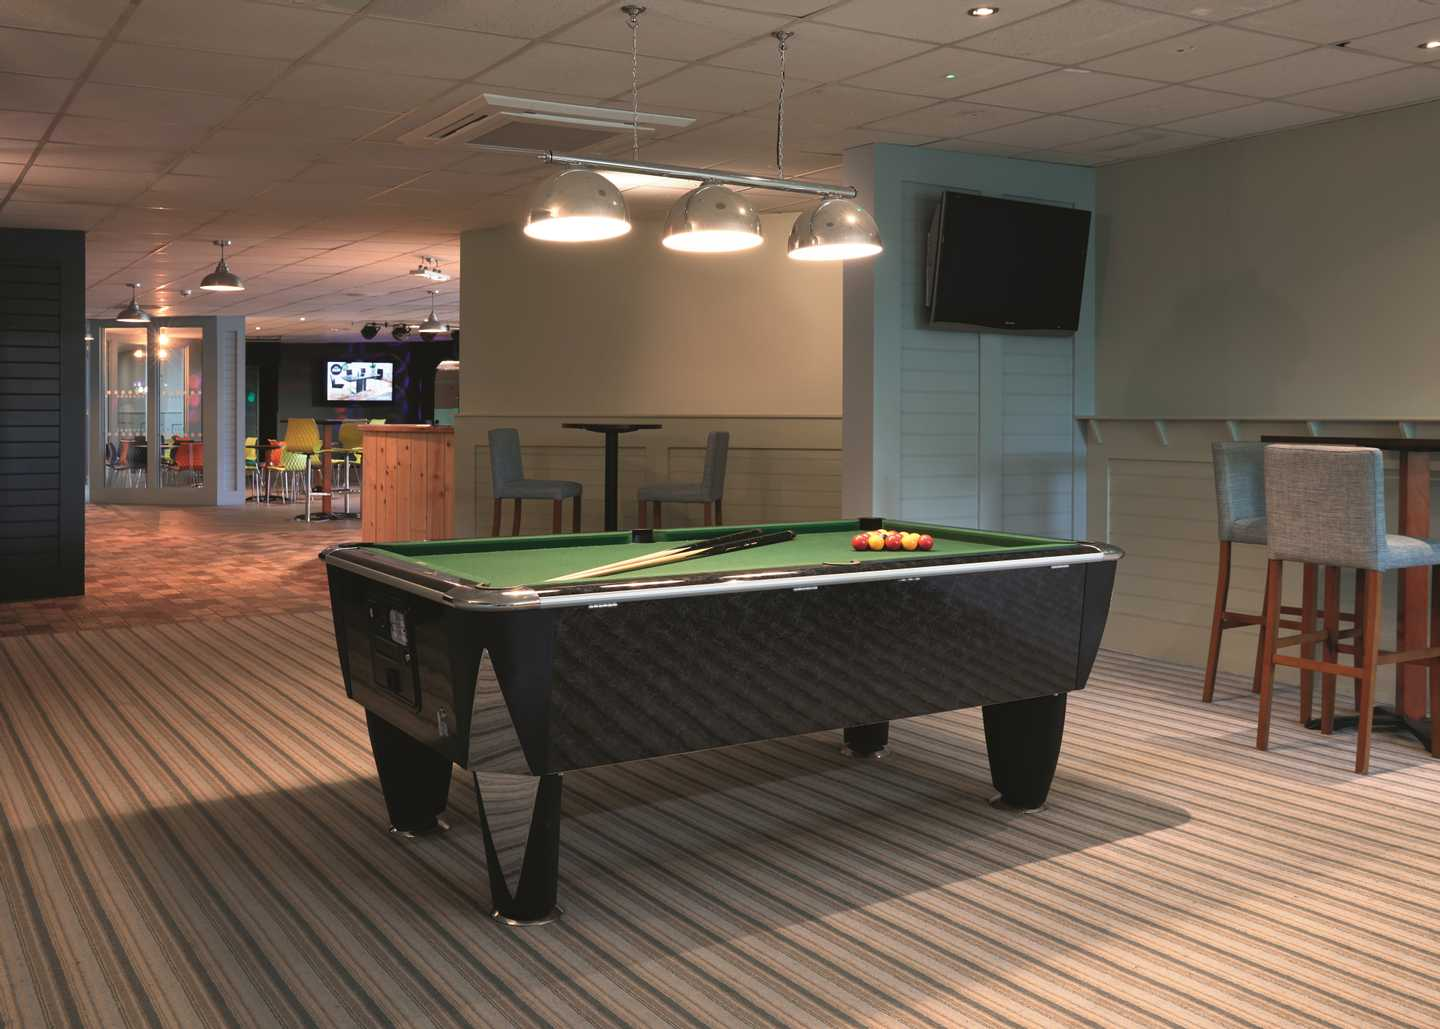 A pool table at the Saxon Family Venue